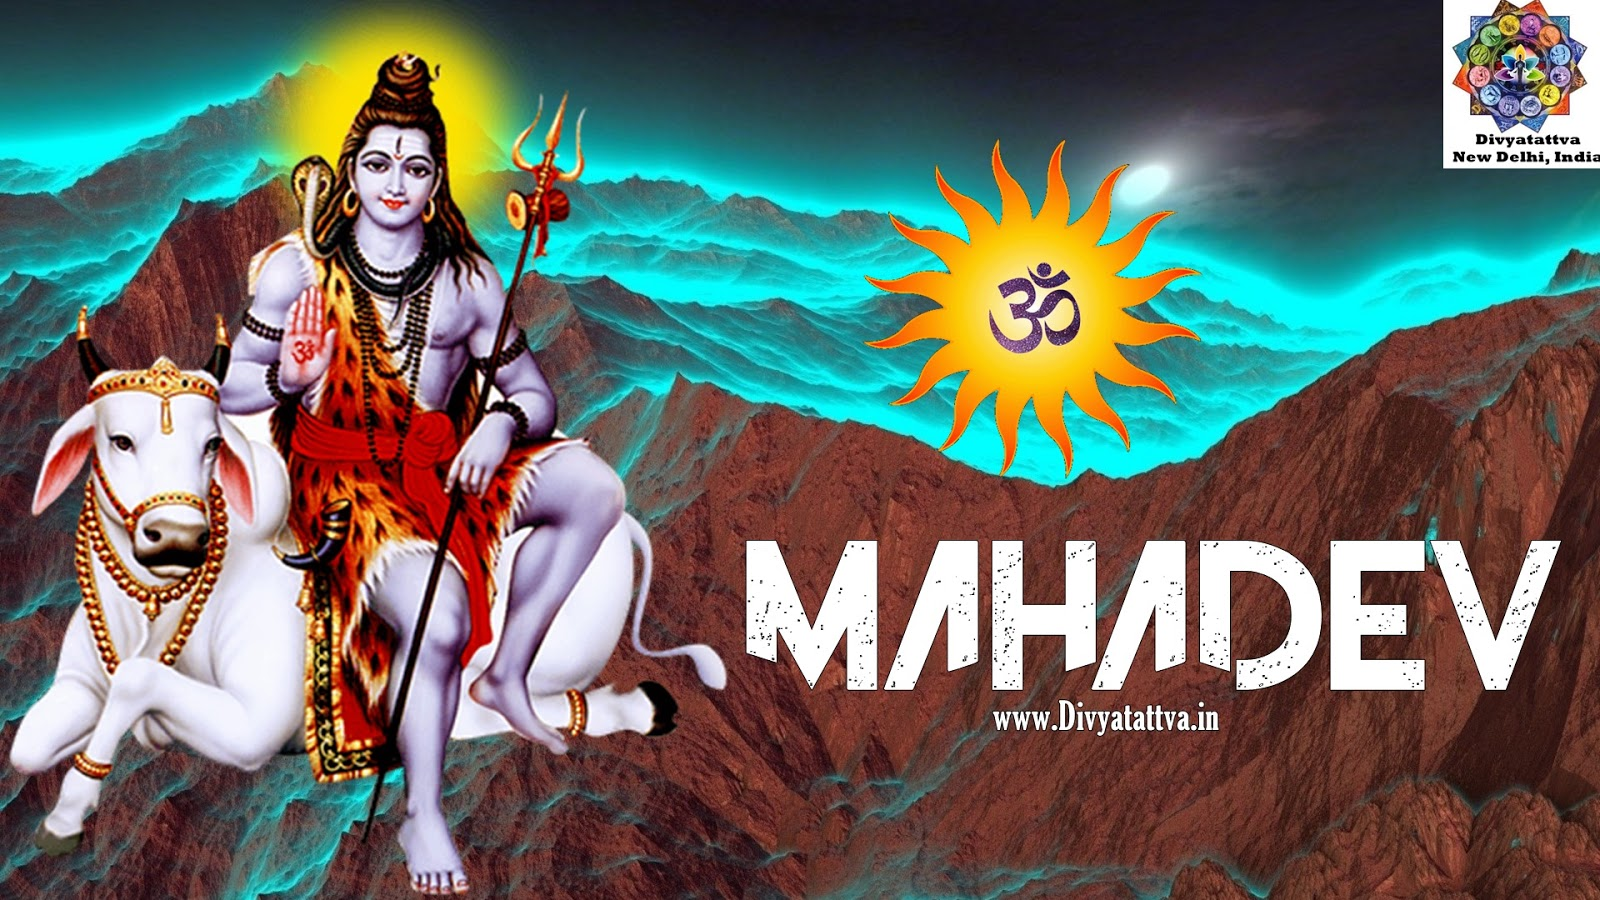 Divyatattva Astrology Free Horoscopes Psychic Tarot Yoga Tantra Occult Images Videos Shivaratri Hd Wallpapers Lord Shiva Images Mahadev By Rohit Anand